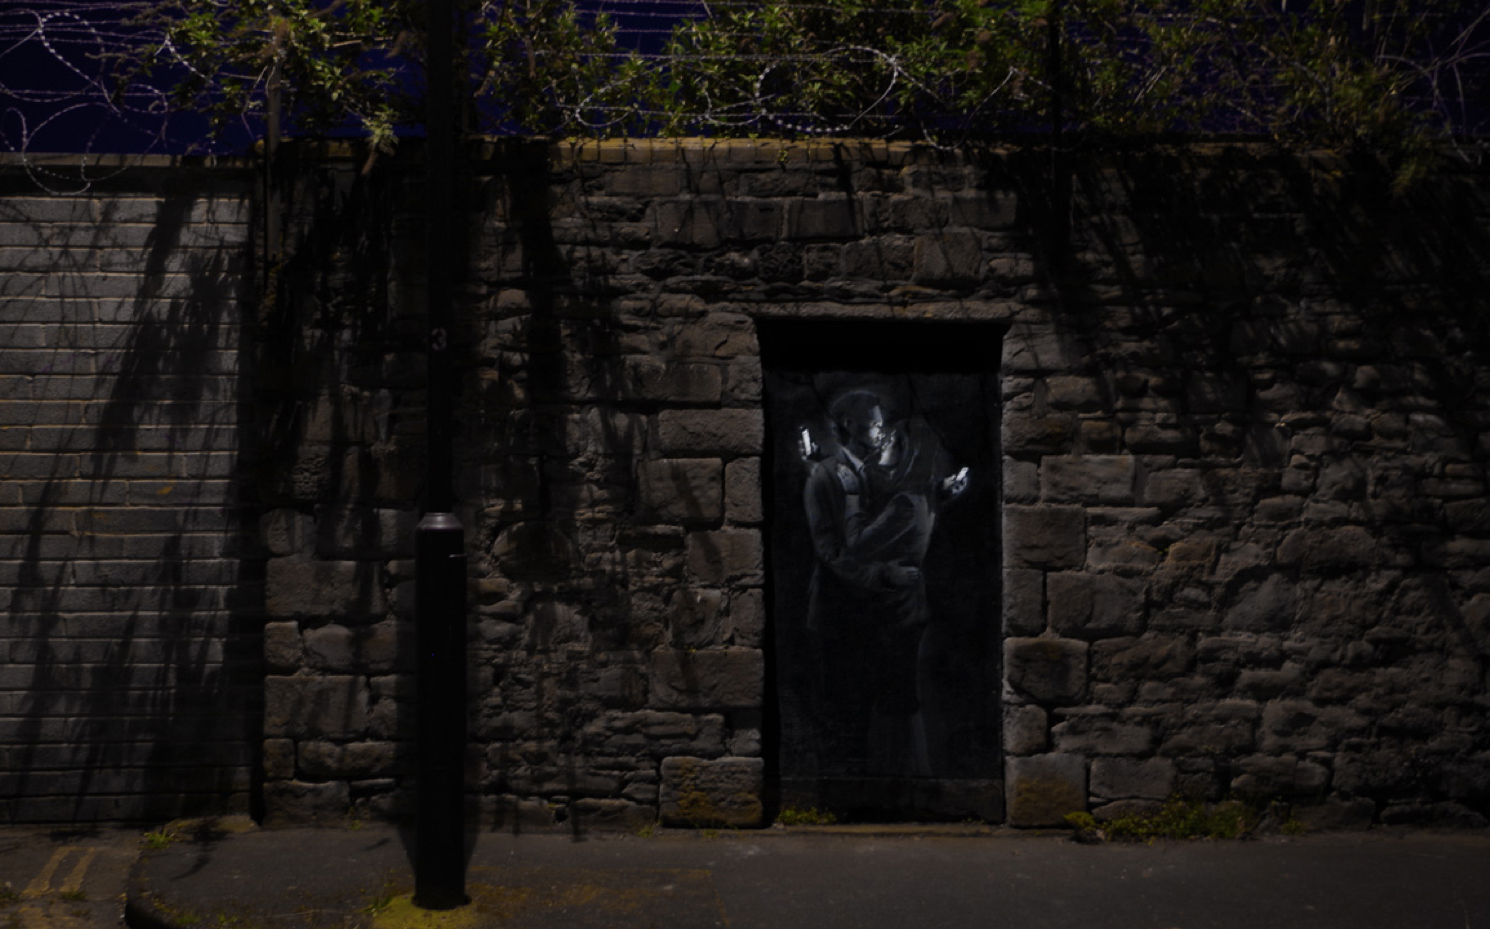 New Banksy Pieces in the UK: Screen shot 2014-04-14 at 11.45.27 AM.png